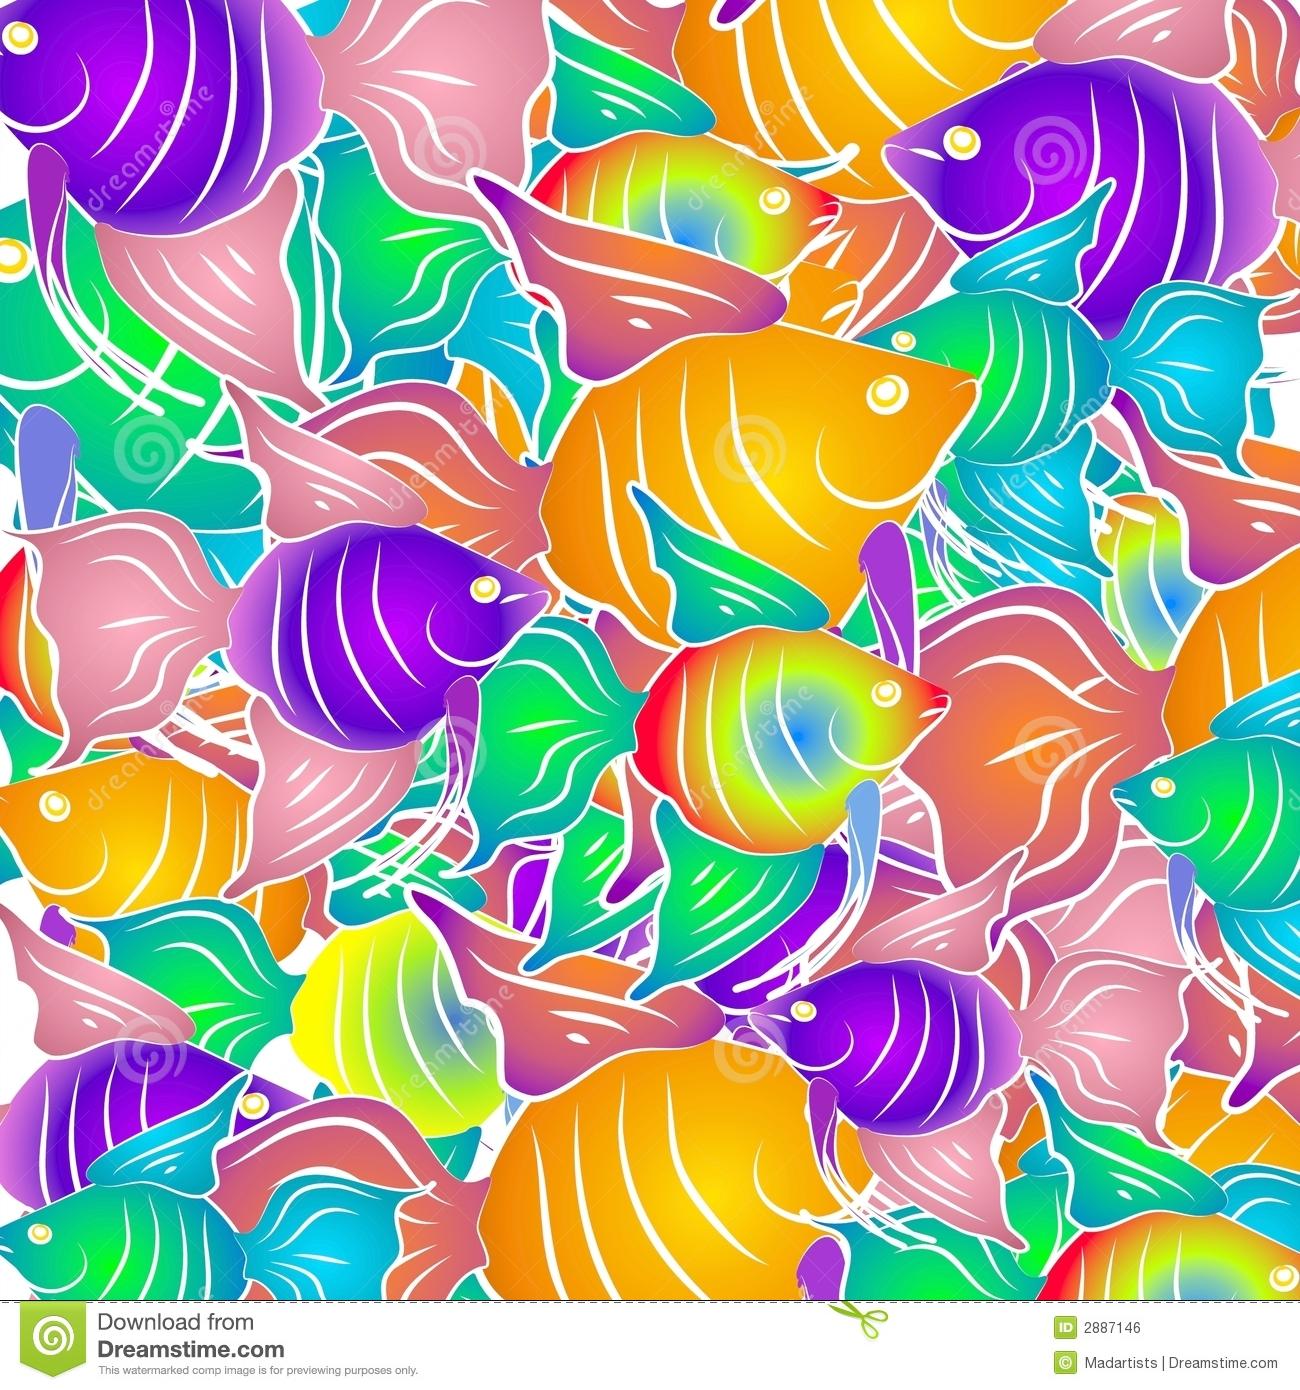 Tribal Fish Ipad Wallpaper Background And Theme: Tropical Fish Background Royalty Free Stock Image